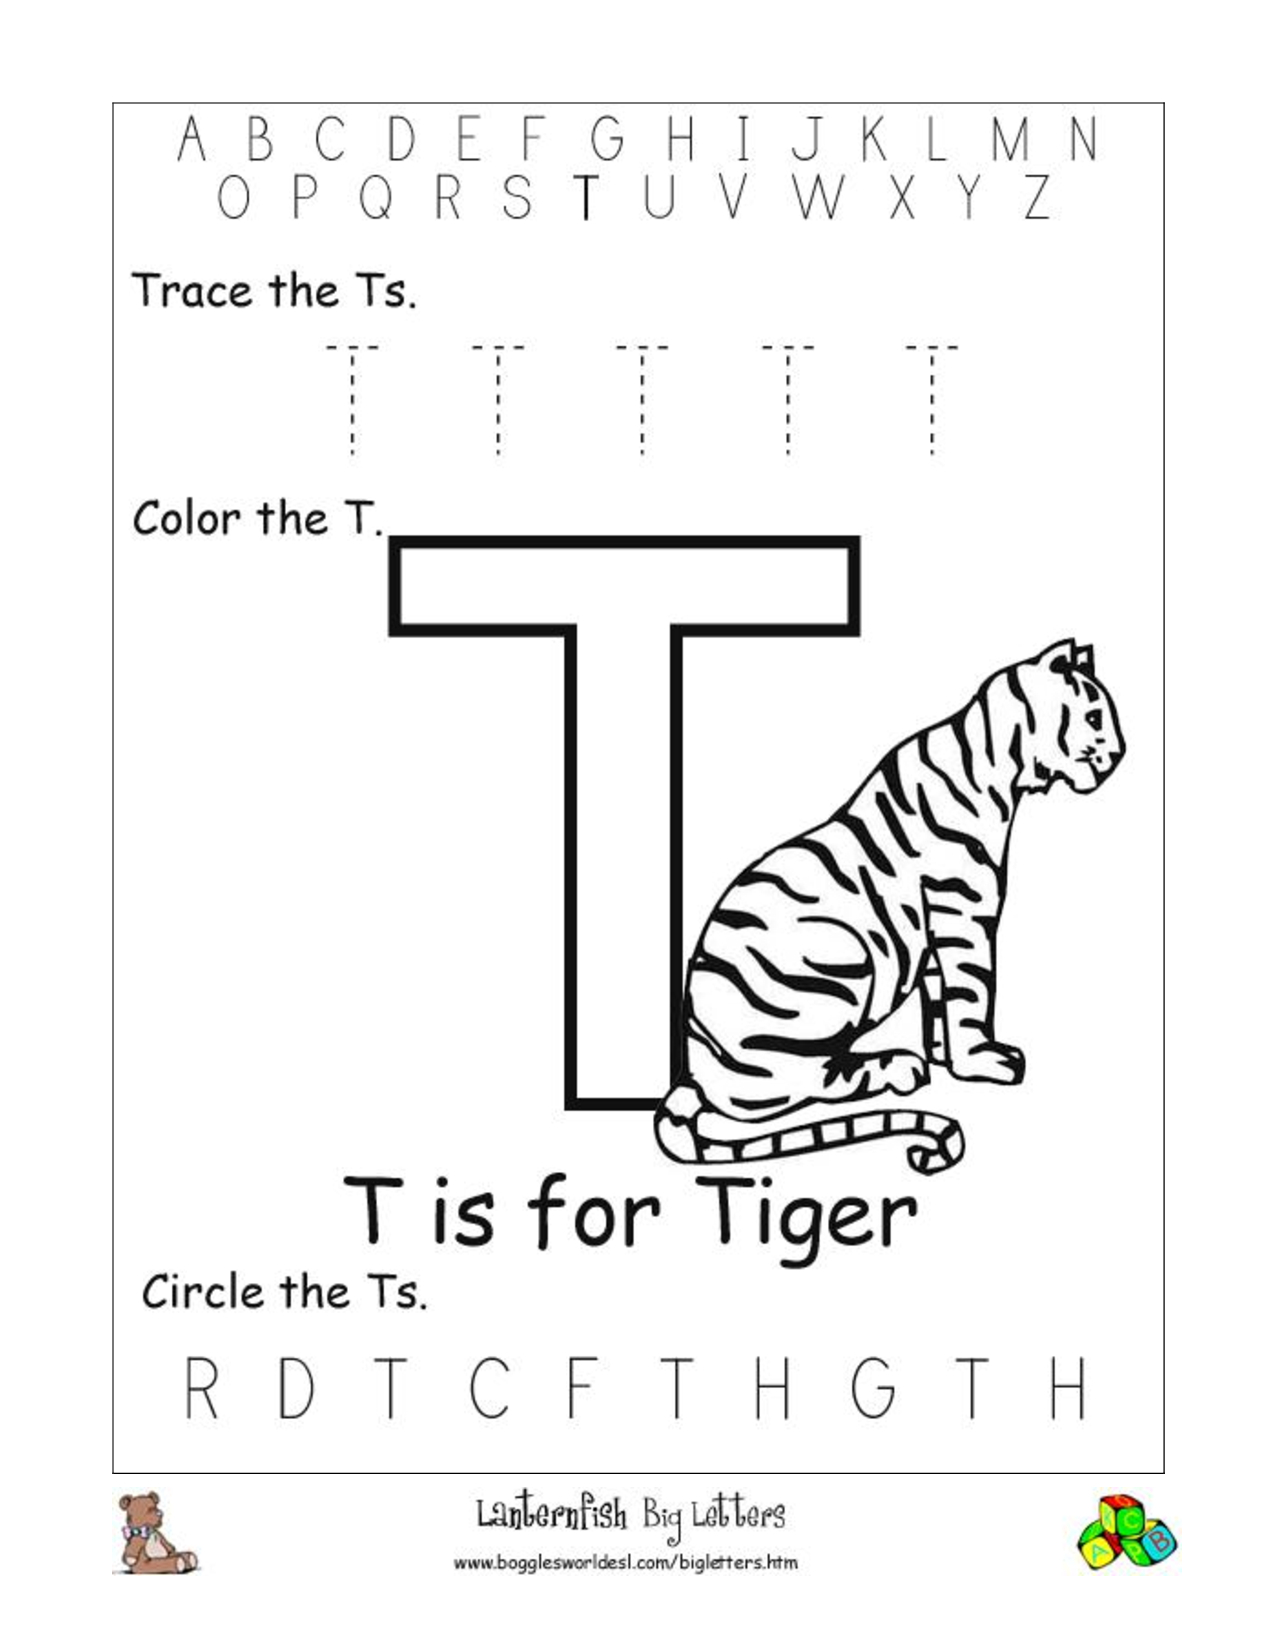 20 Learning The Letter T Worksheets | Kittybabylove within Letter T Worksheets For First Grade